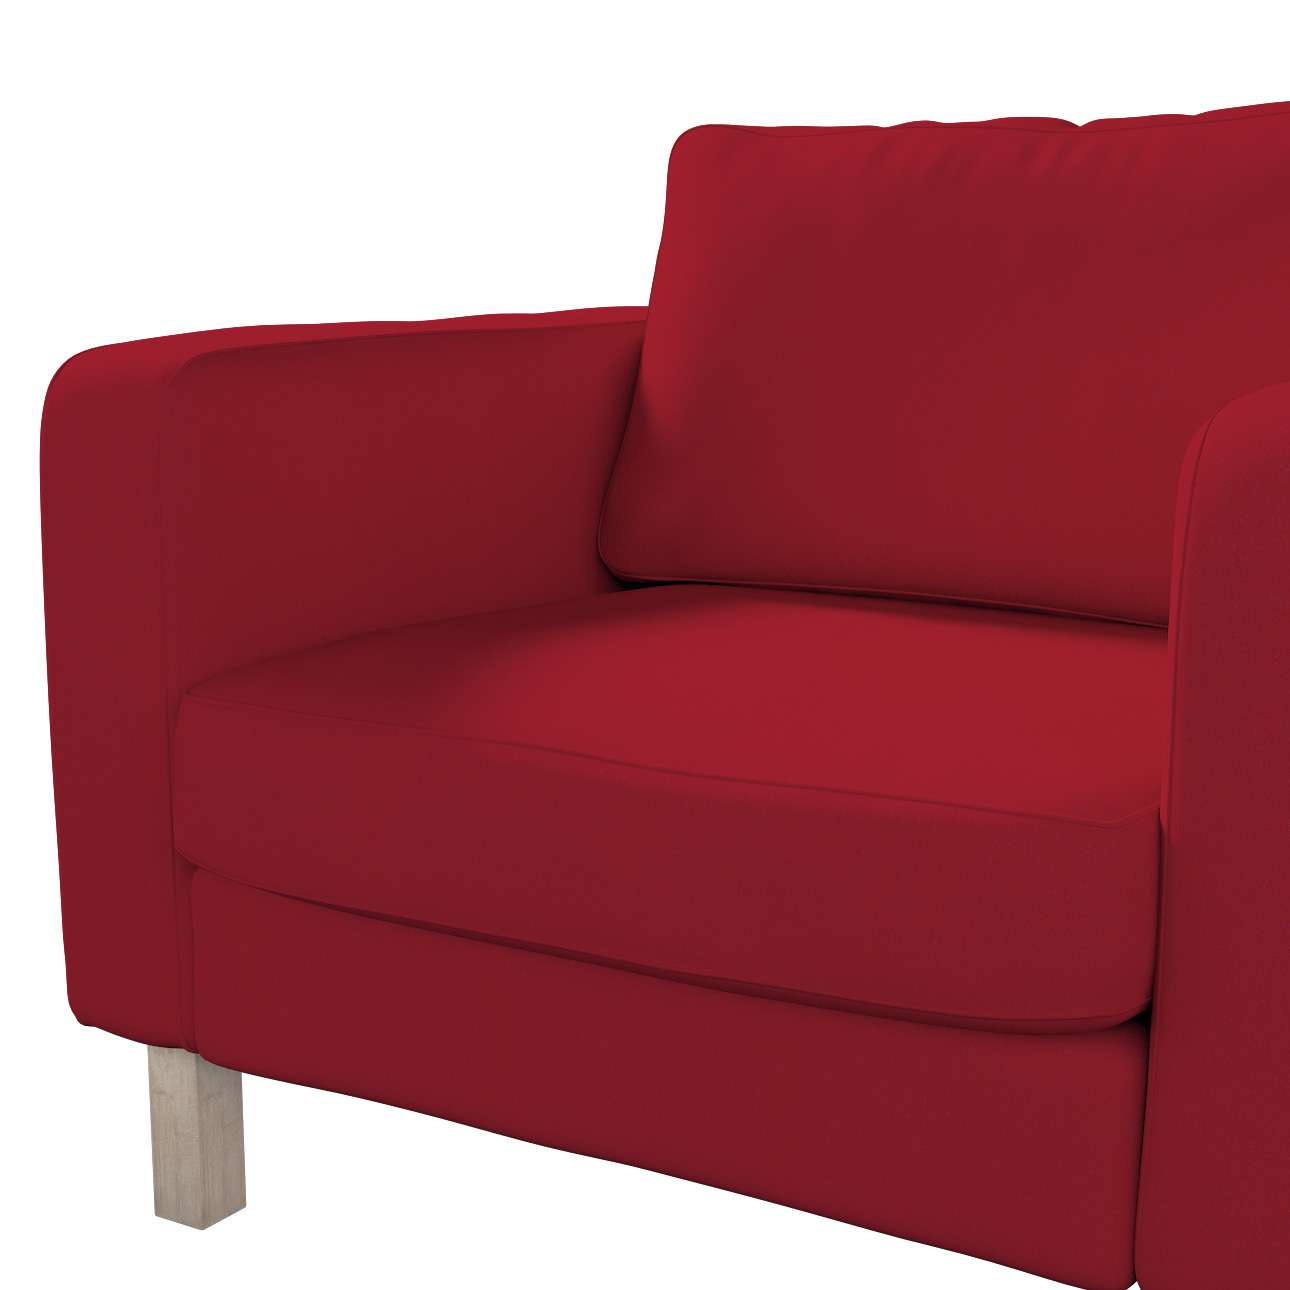 Karlstad armchair cover in collection Chenille, fabric: 702-24